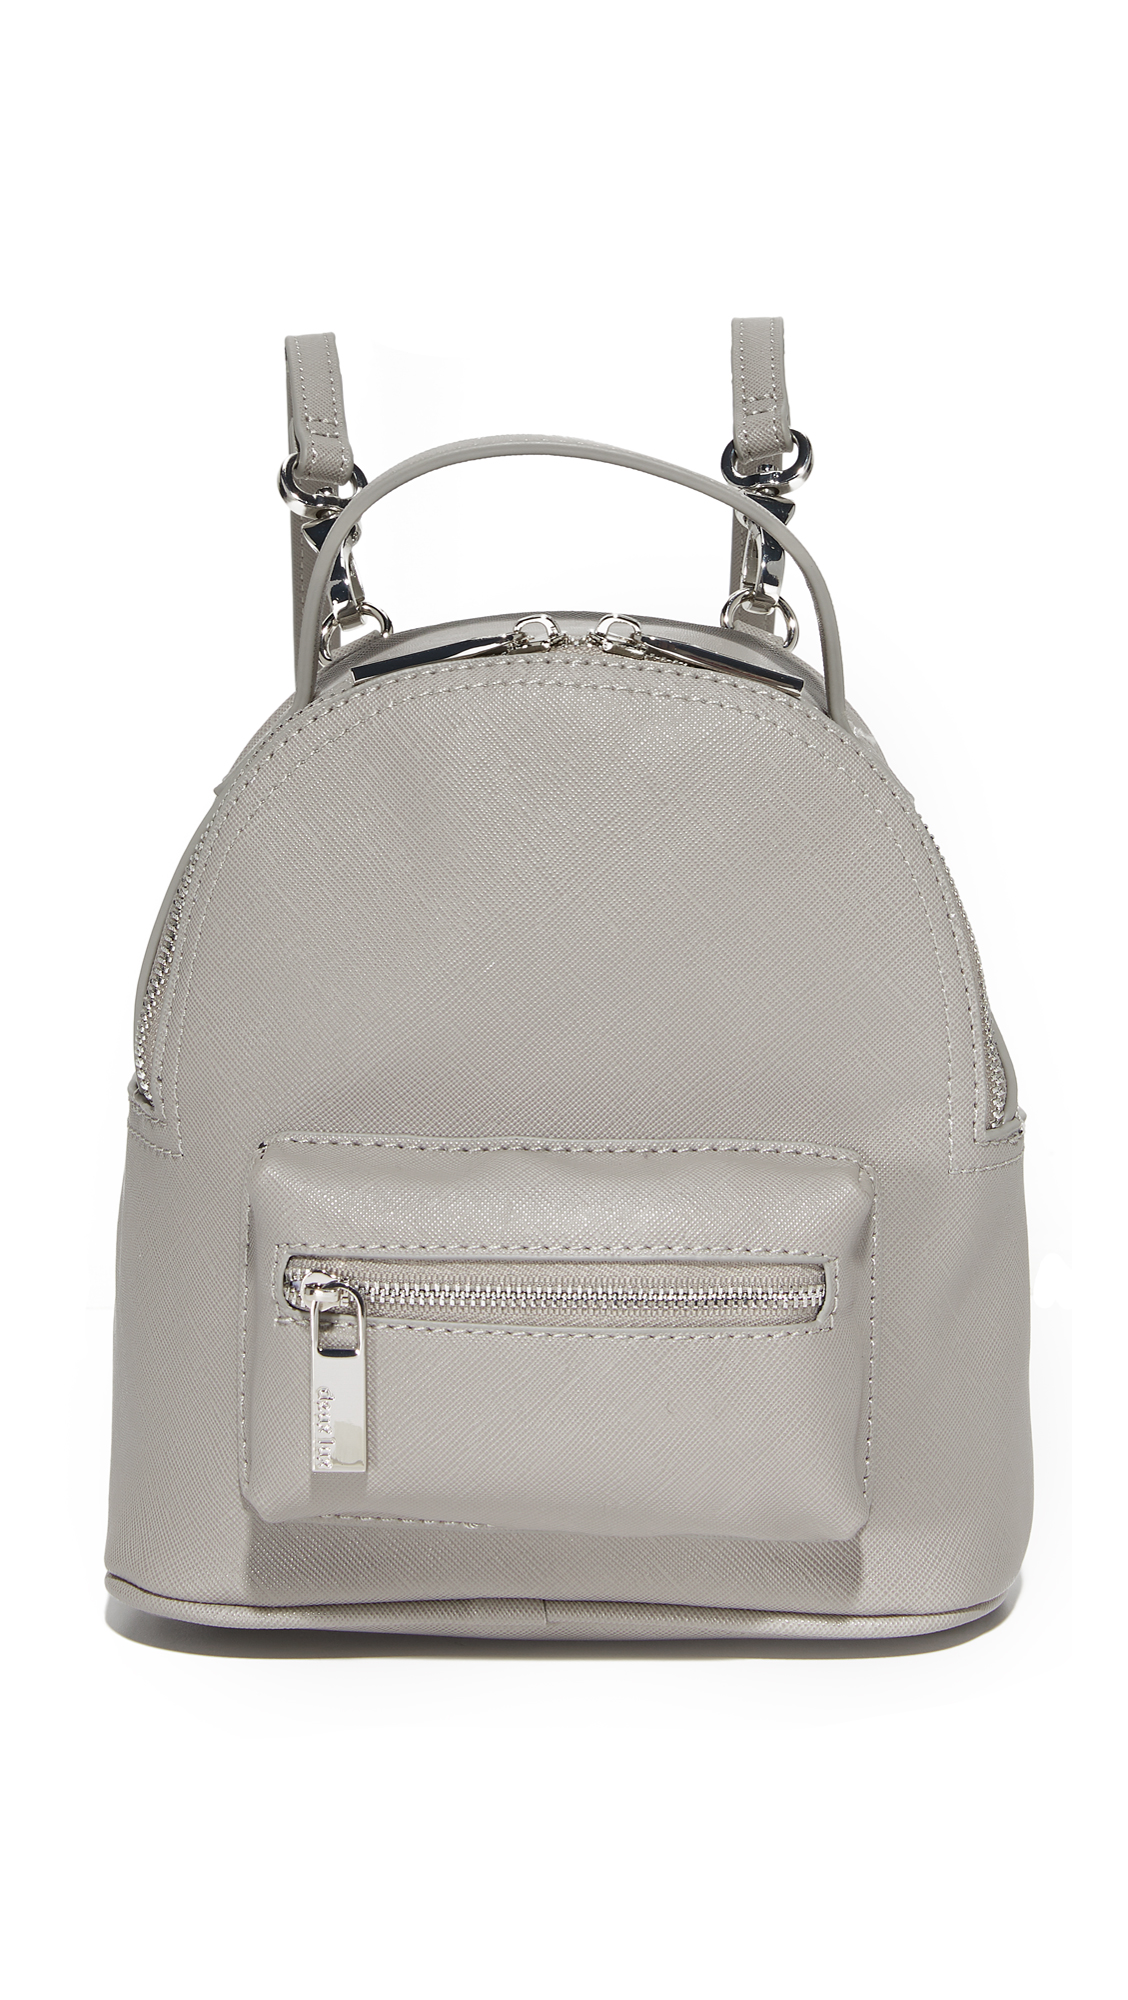 Deux Lux Annabelle Convertible Mini Backpack - Dove Grey